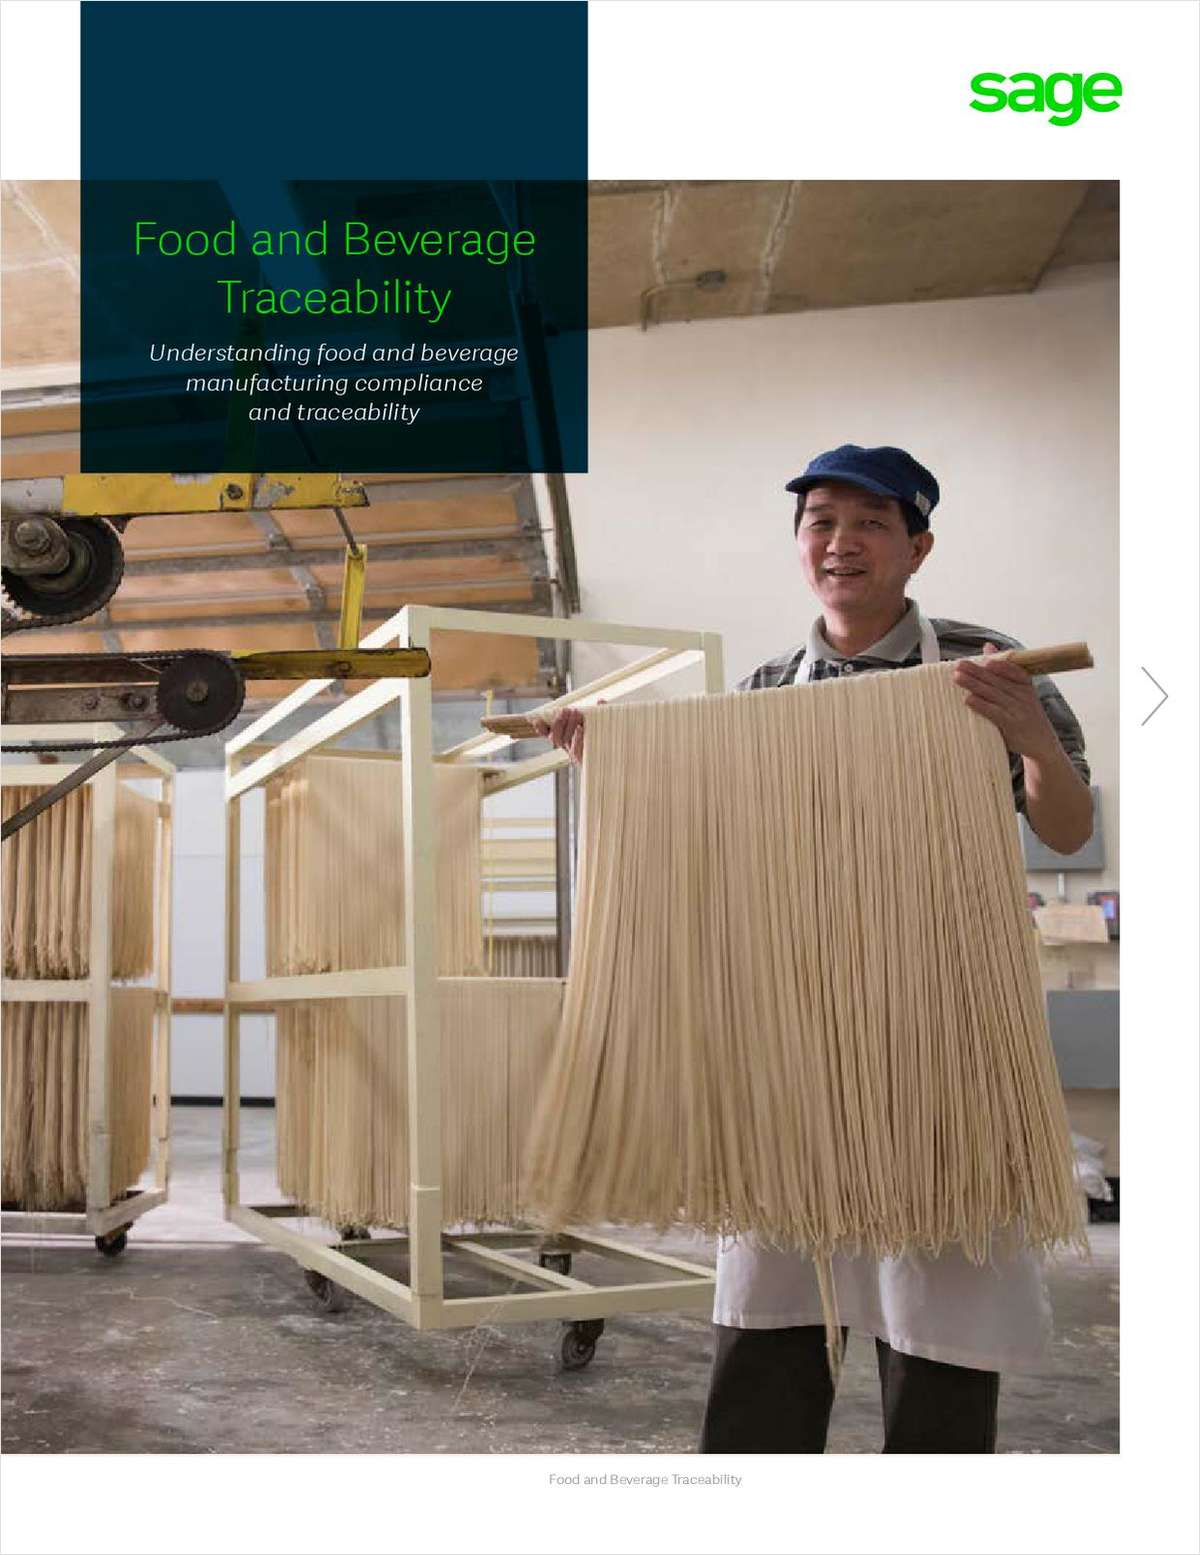 How to Understand Food and Beverage Manufacturing Compliance and Traceability